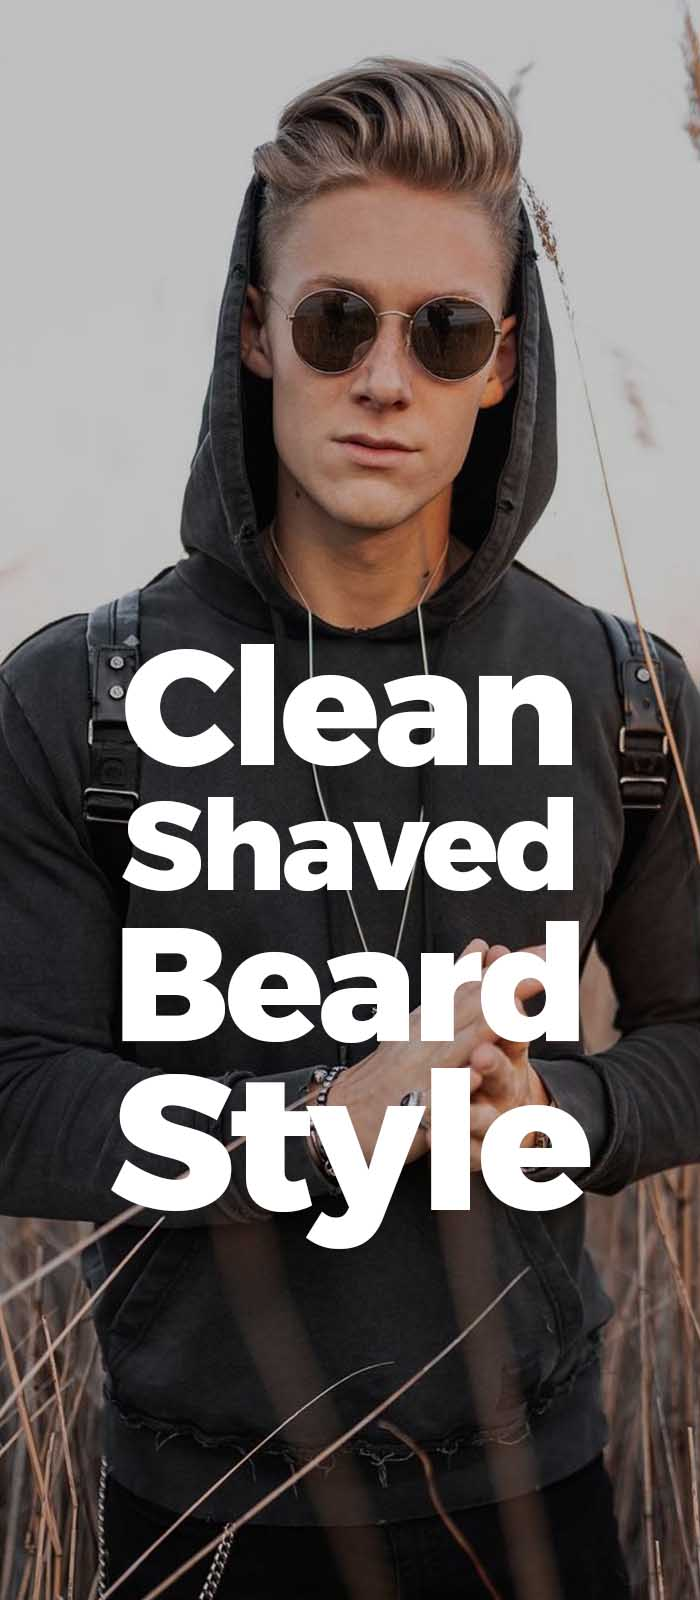 Clean Shave look for men!